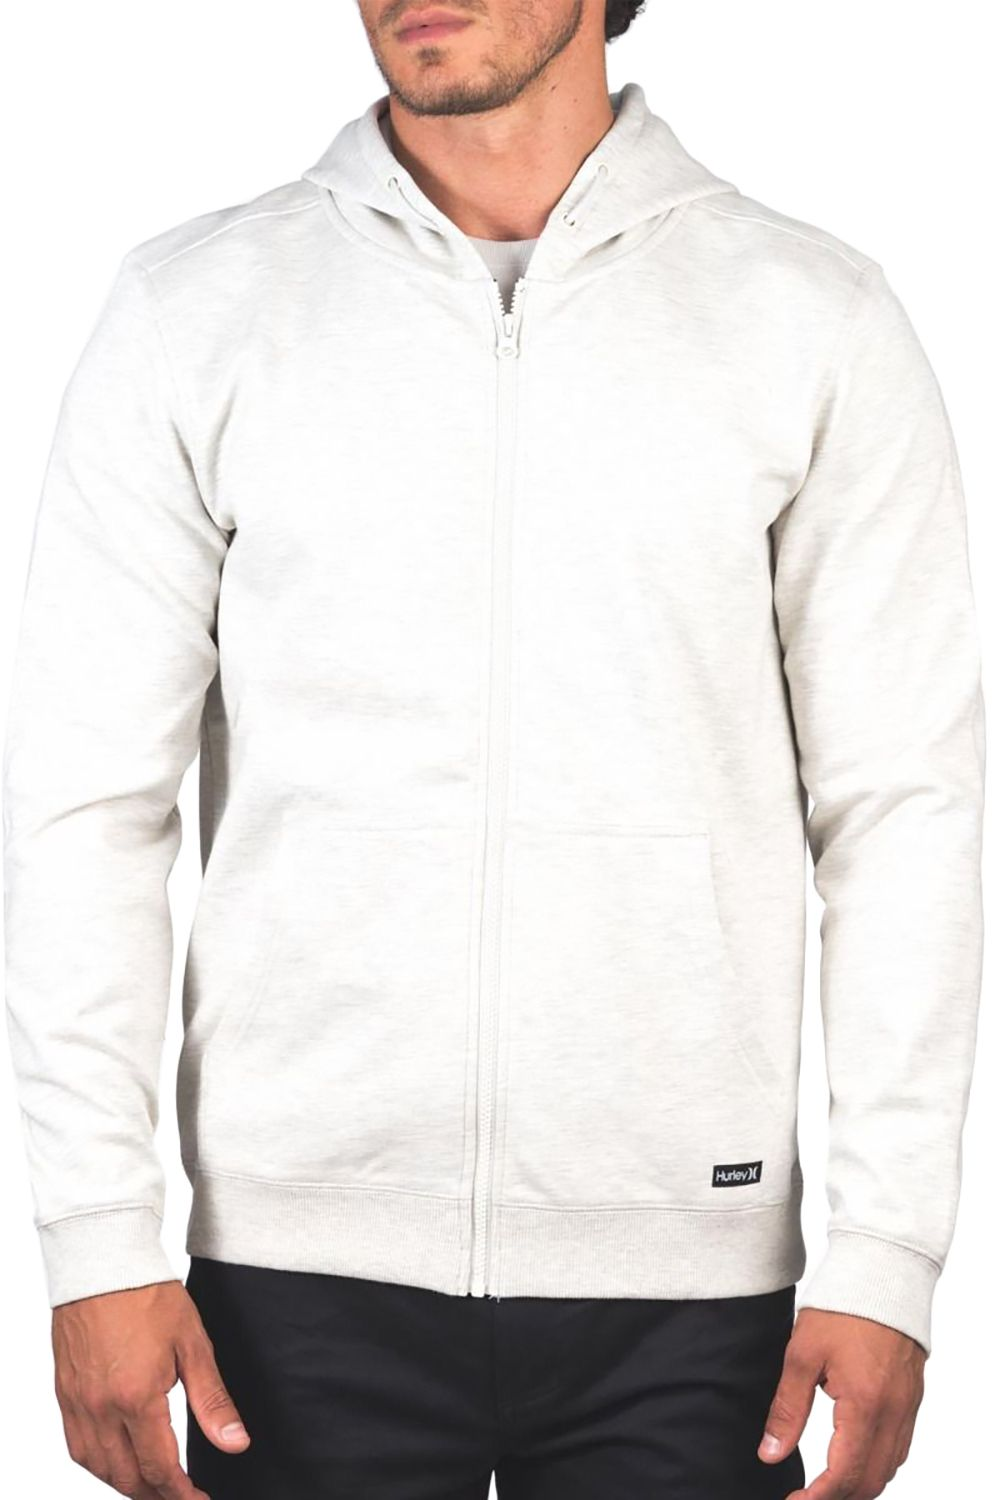 Sweat Fecho Hurley M THERMA PROTECT FZ 2.0 Oatmeal Htr